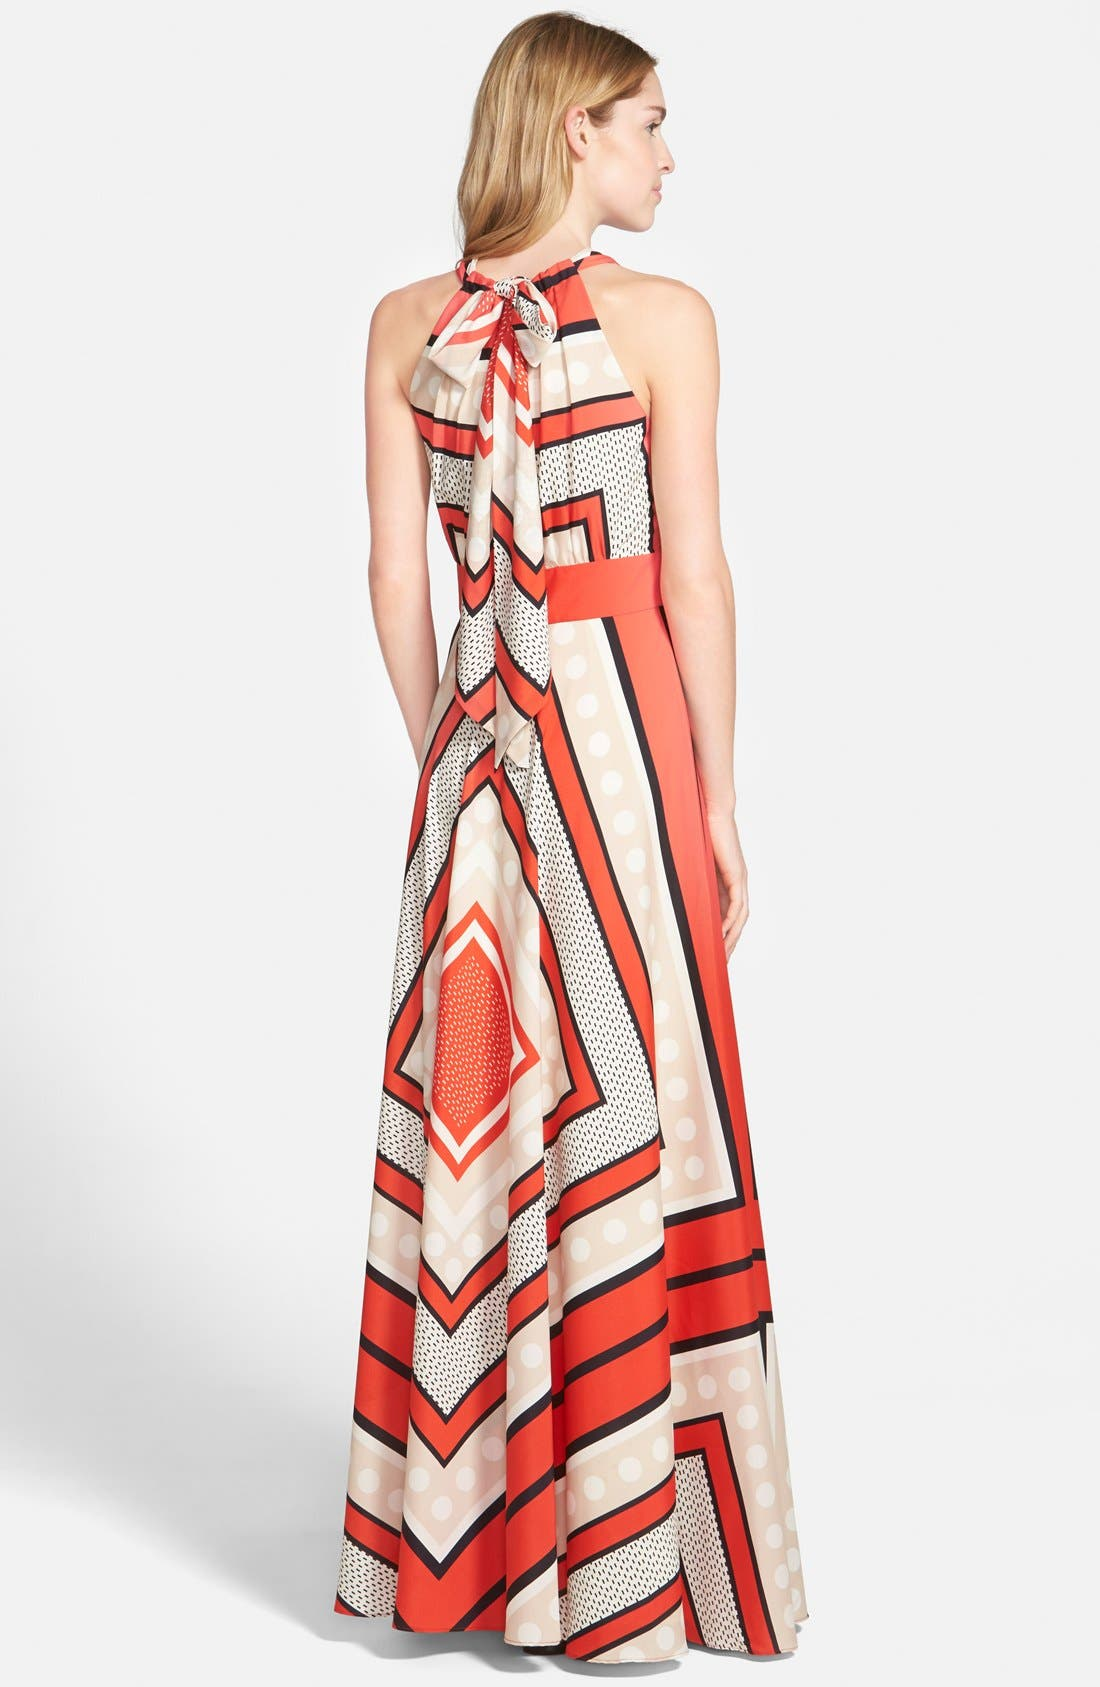 Alternate Image 3  - Eliza J Scarf Print Crêpe de Chine Fit & Flare Maxi Dress (Regular & Petite)